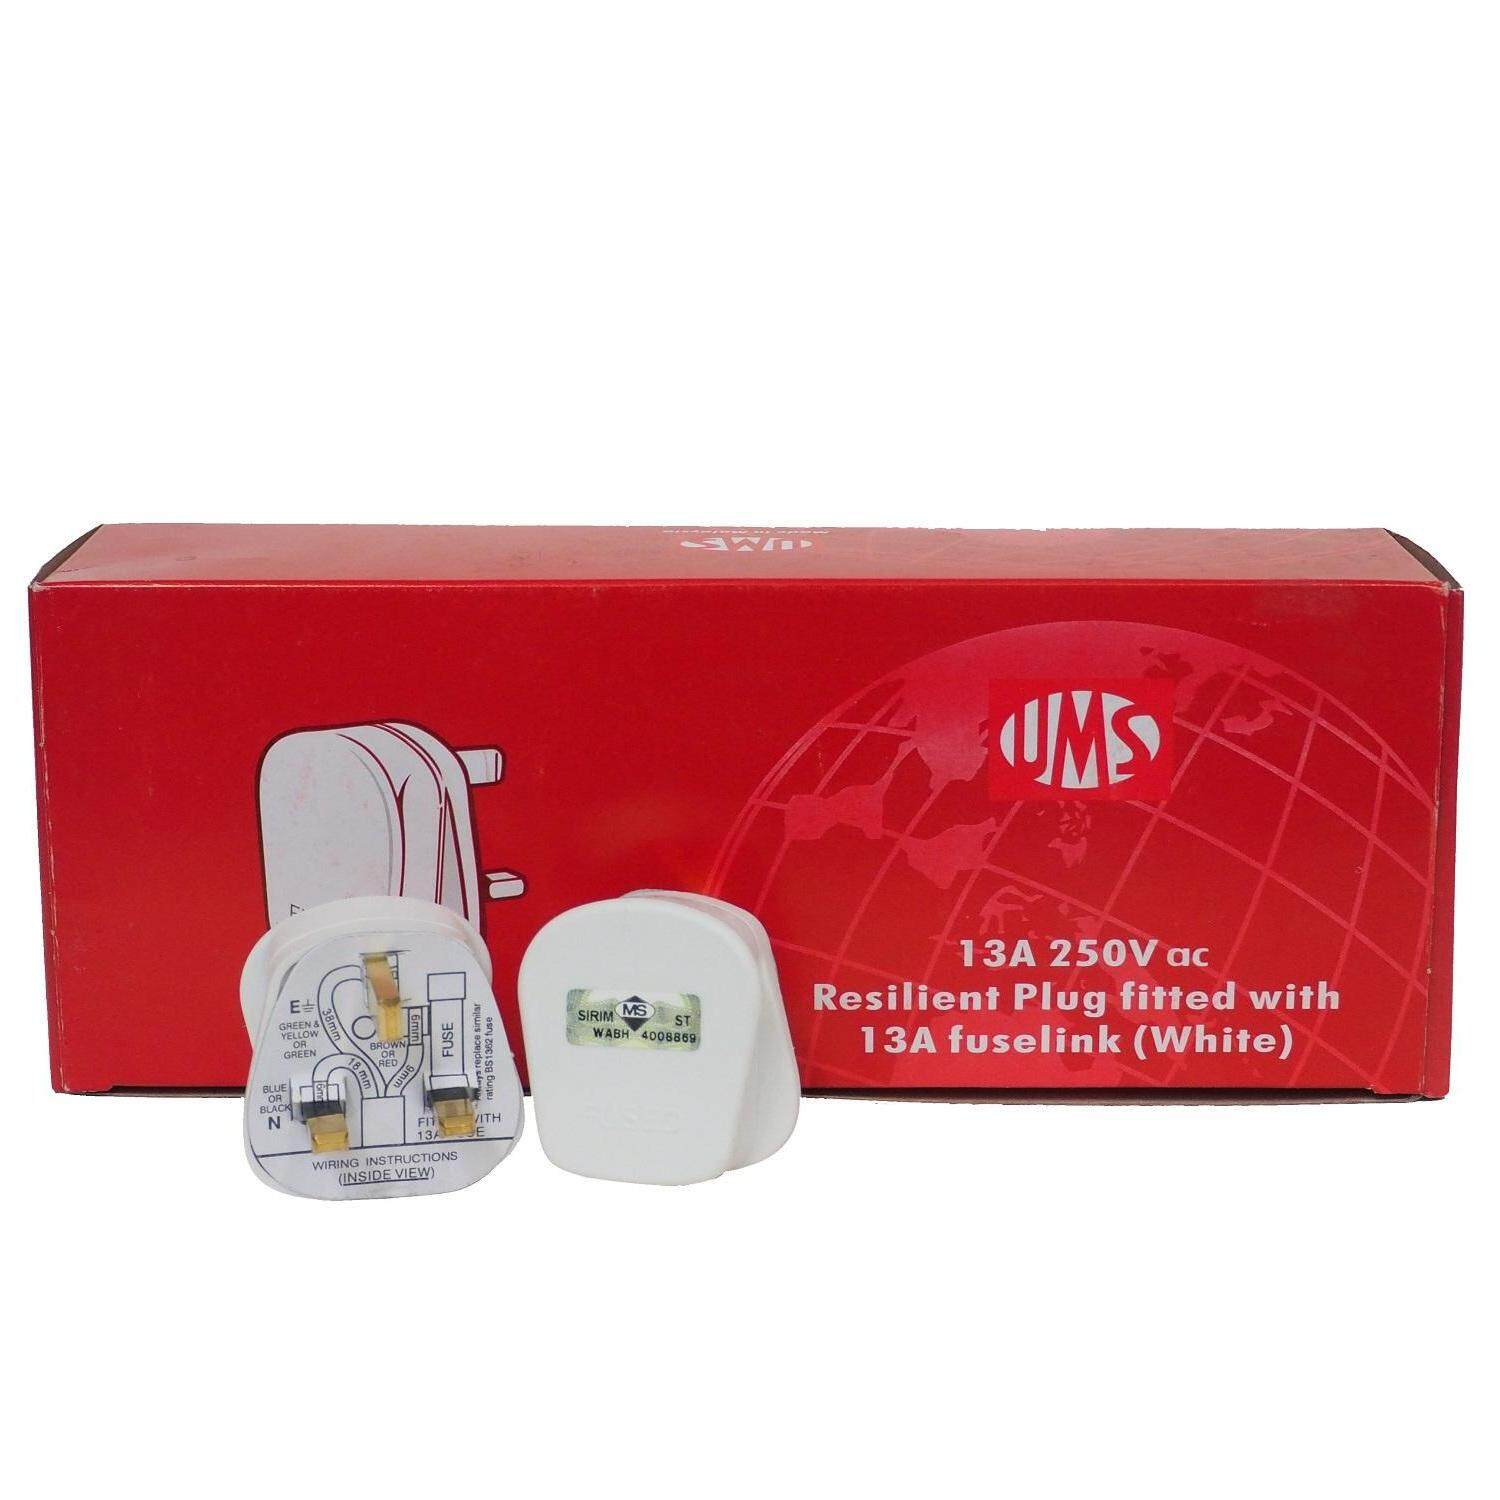 UMS 13A 250V 3PIN PLUG TOP (SIRIM Approved)